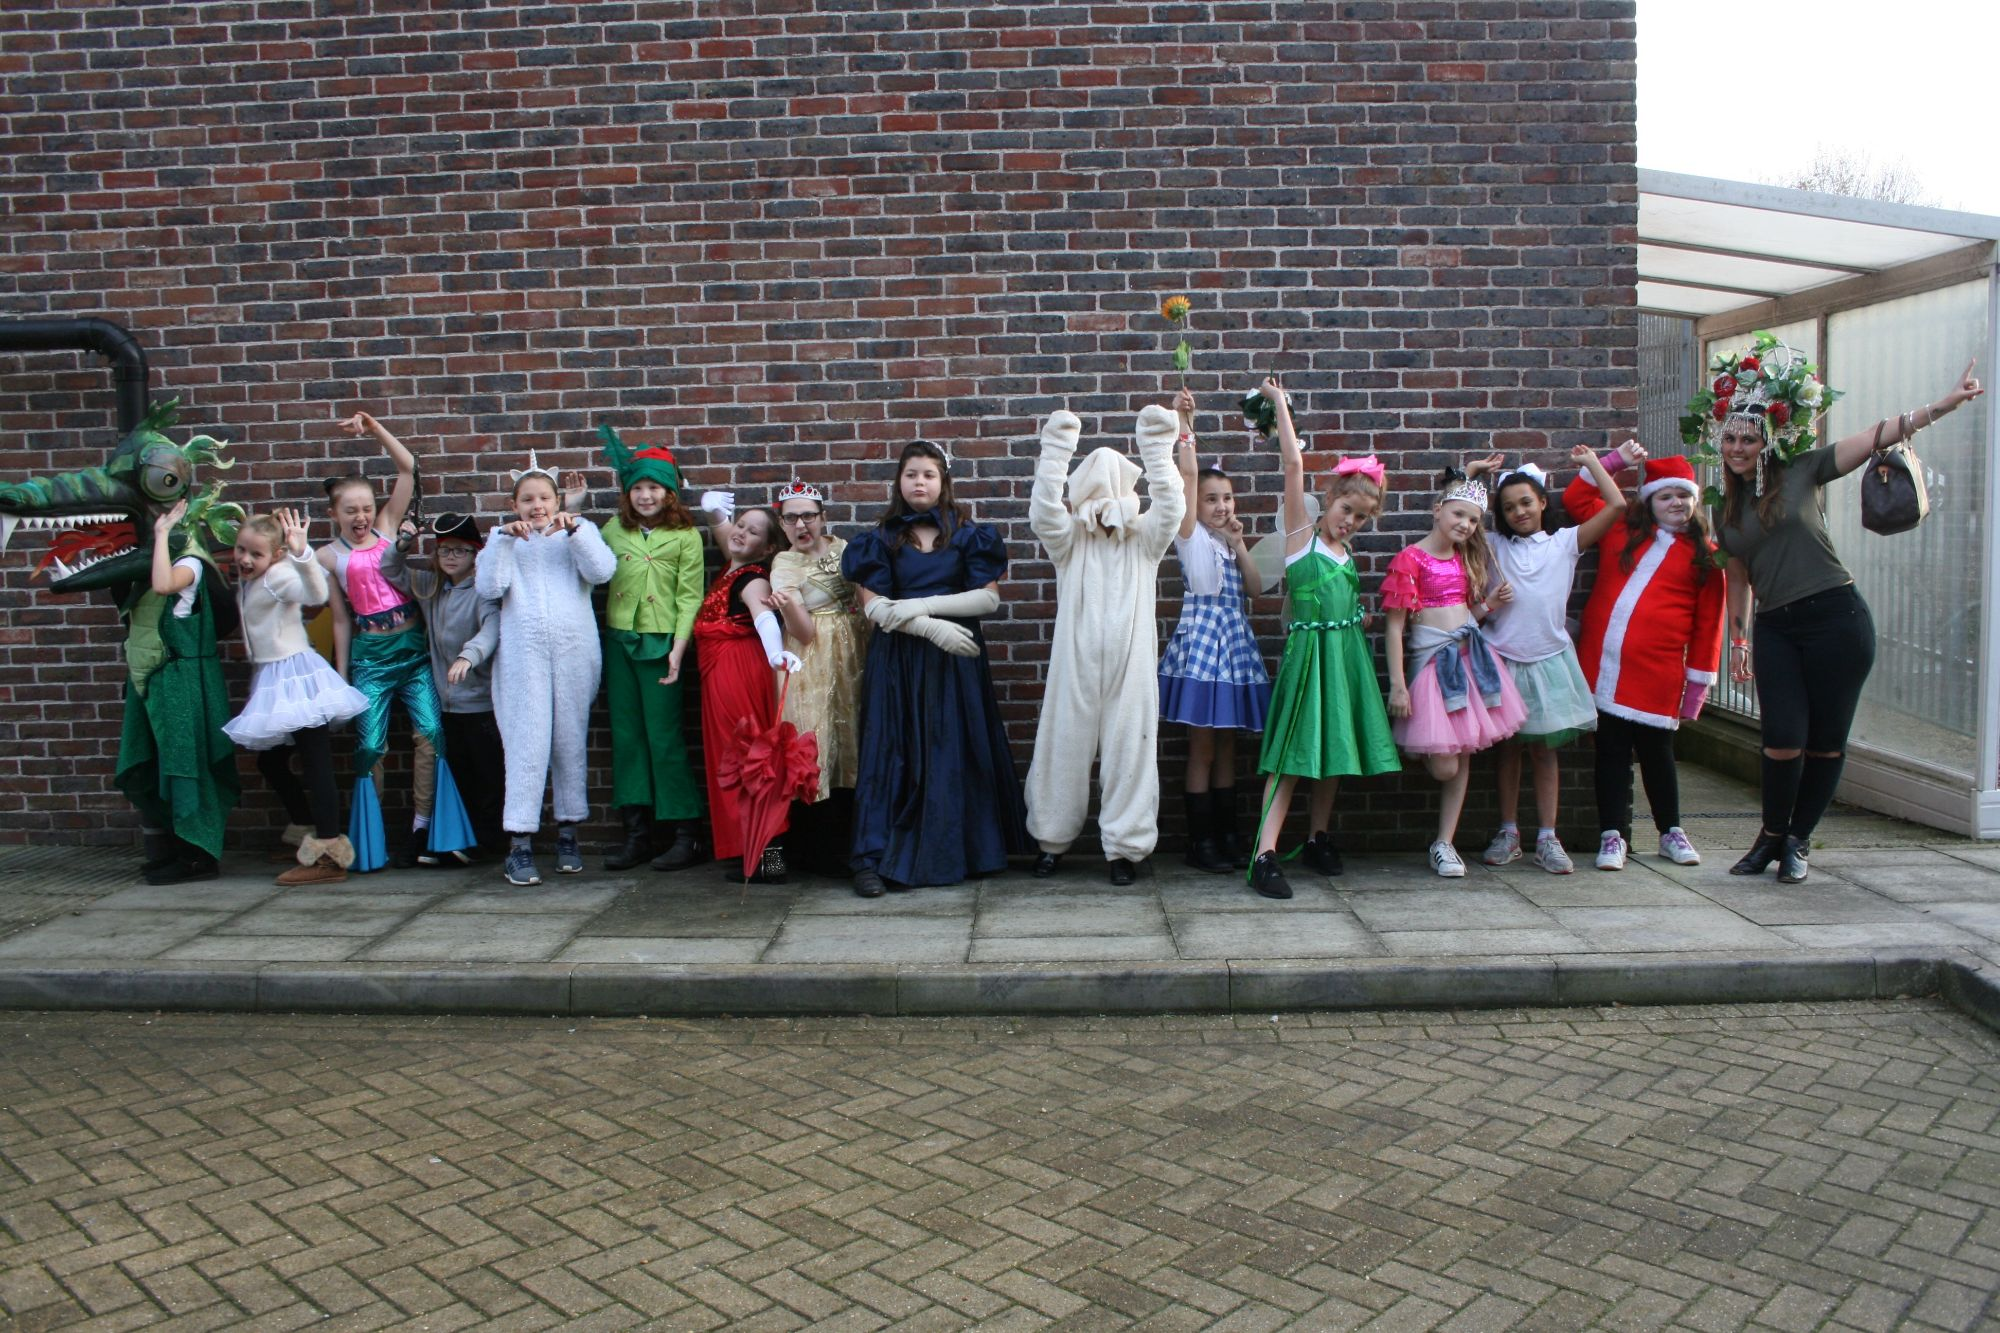 Group of pupils from Moulsecoomb Primary School in costume outside the Gladrags store